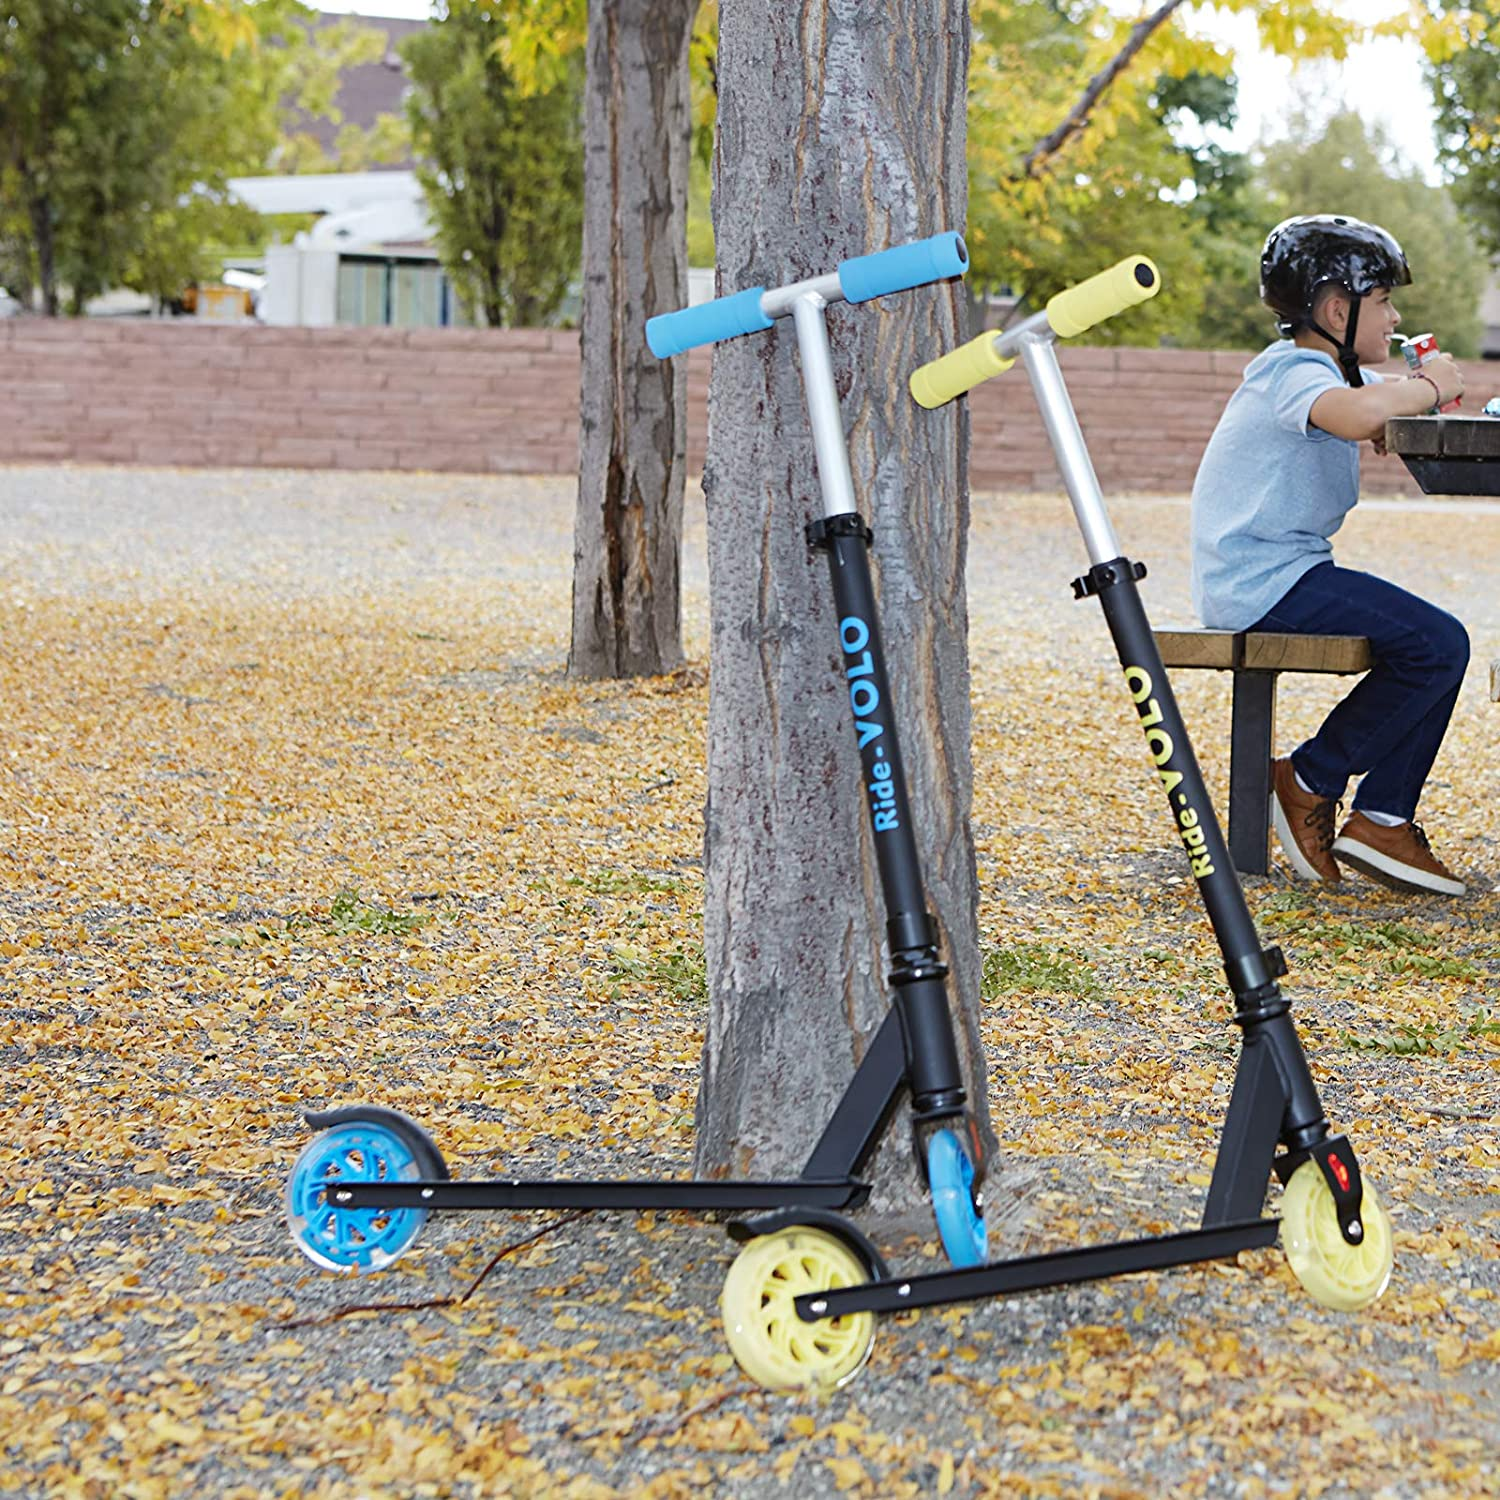 Only 5.19lb RideVOLO K05 Kick Scooter Suitable for 4-9 Years Old Lightweight Aluminum Alloy Frame 5 PU Flash Wheels 3 Adjustable Heights ABEC-5 Wheel Bearings Max Load 110lbs